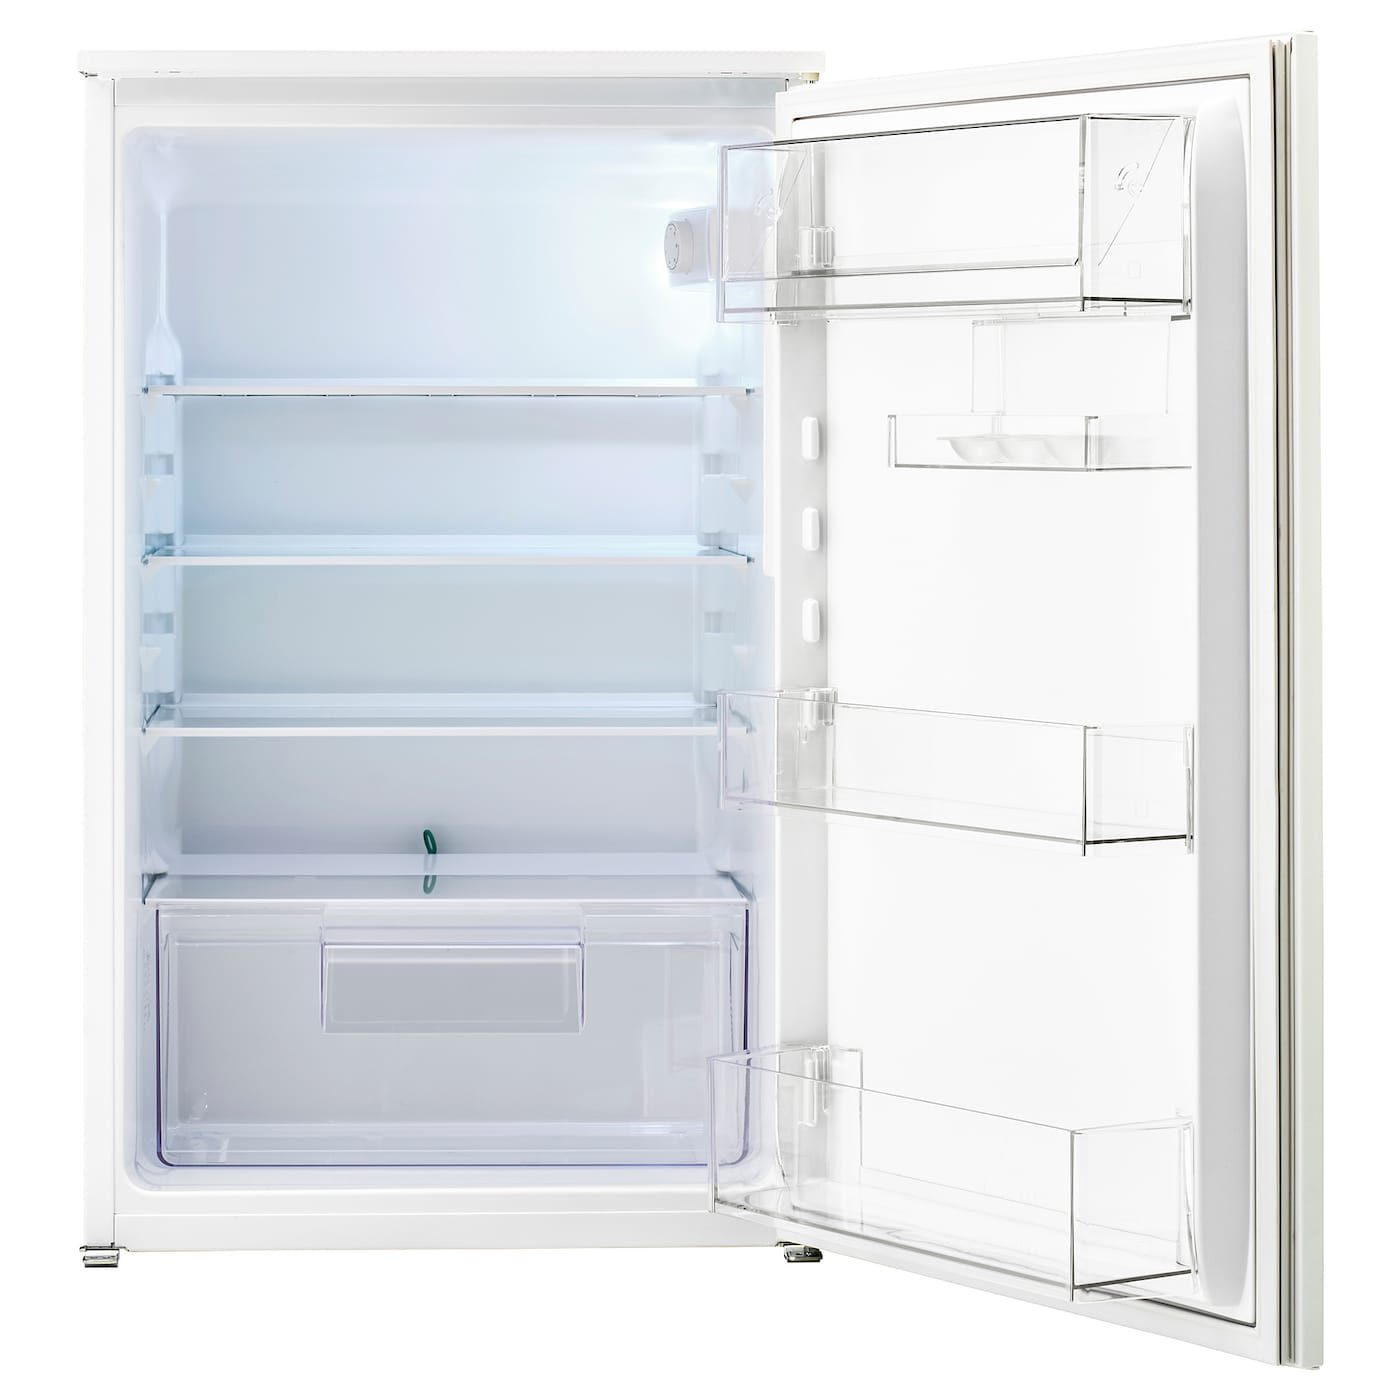 Installer Frigo Encastrable Ikea svalna